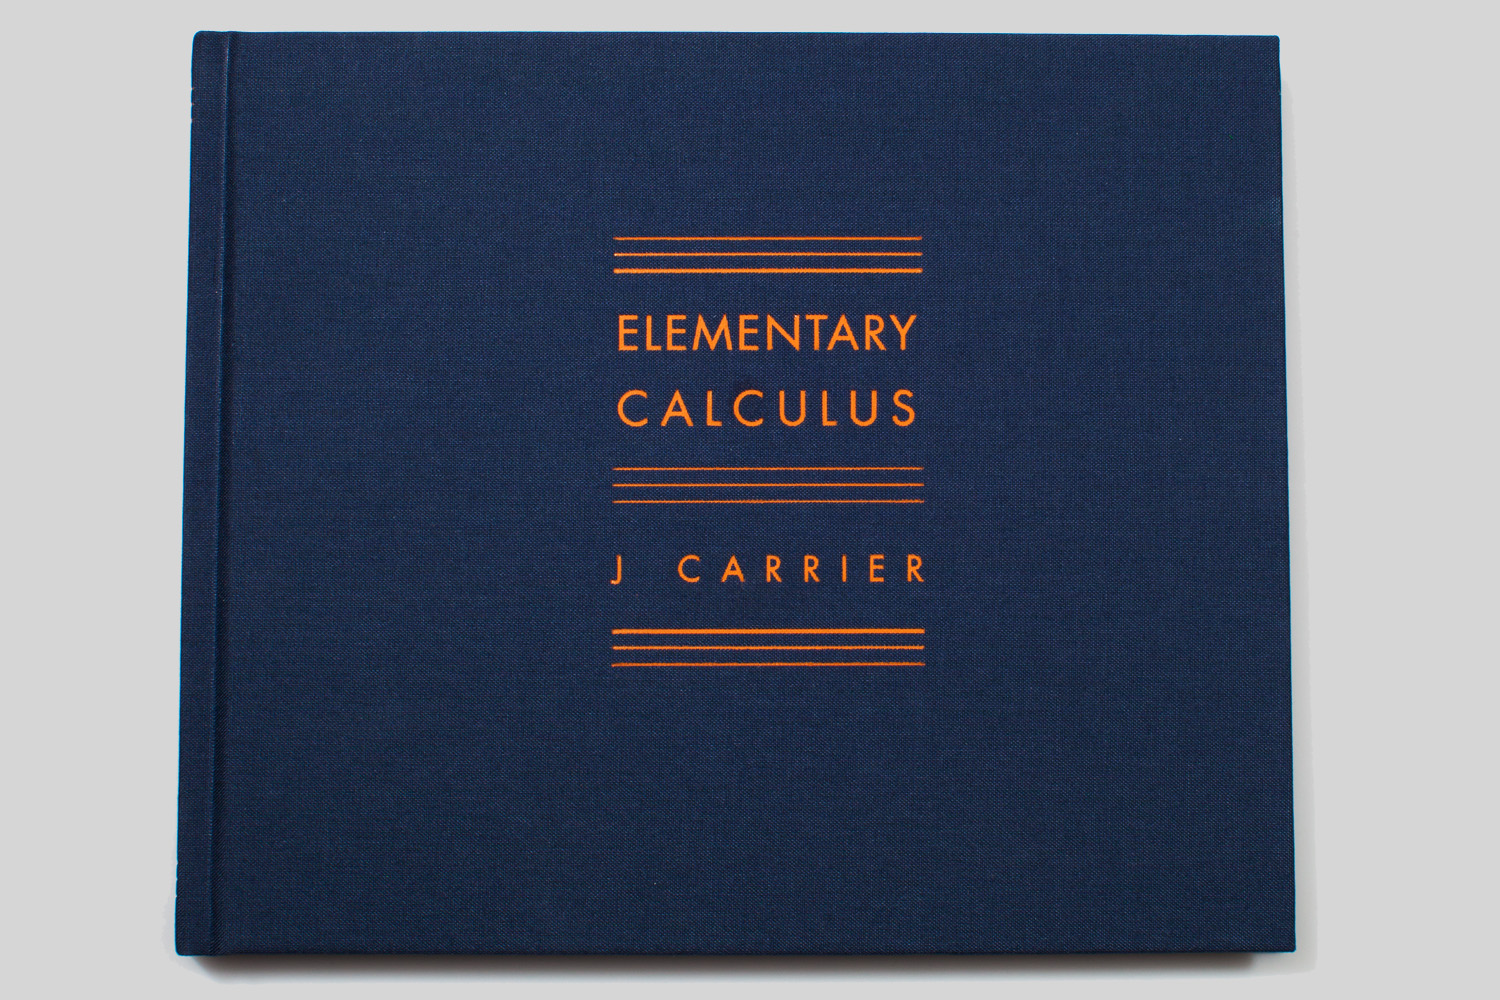 Elementary Calculus by J. Carrier, selected by Alec Soth, photographer and publisher of Little Brown Mushroom